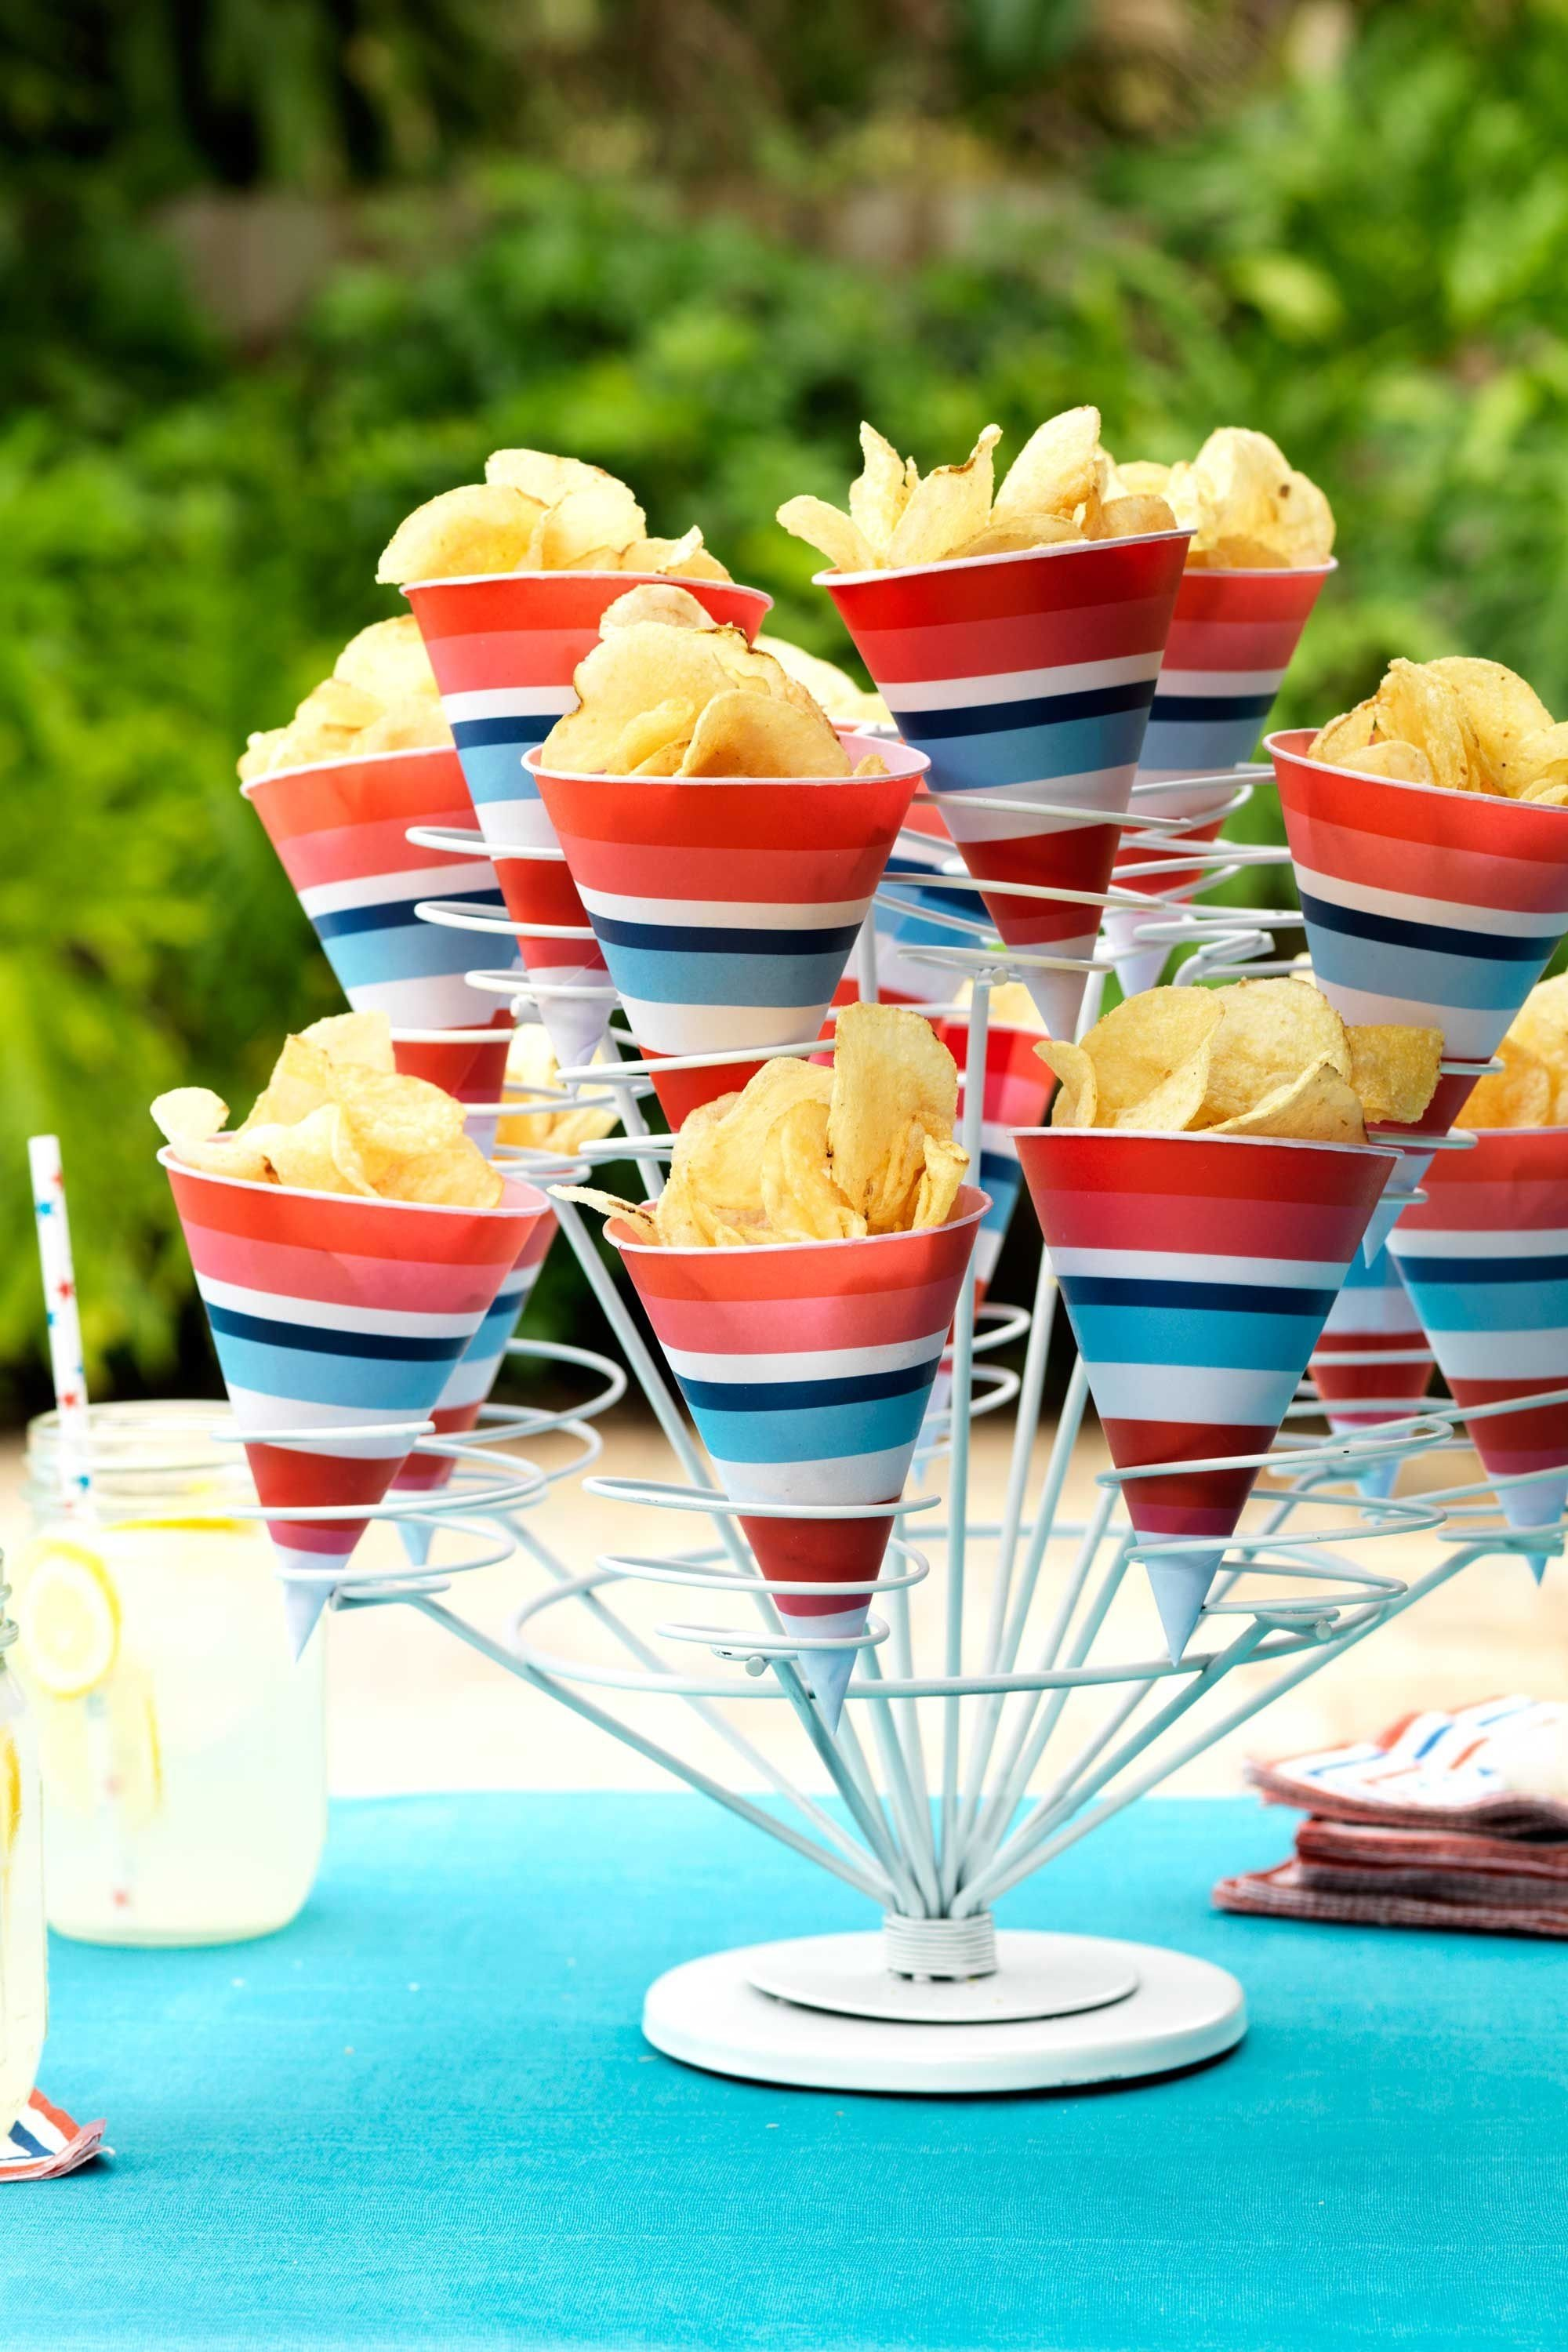 10 Unique 4Th Of July Cookout Ideas 24 4th of july party ideas food decor for a fourth of july cookout 11 2020